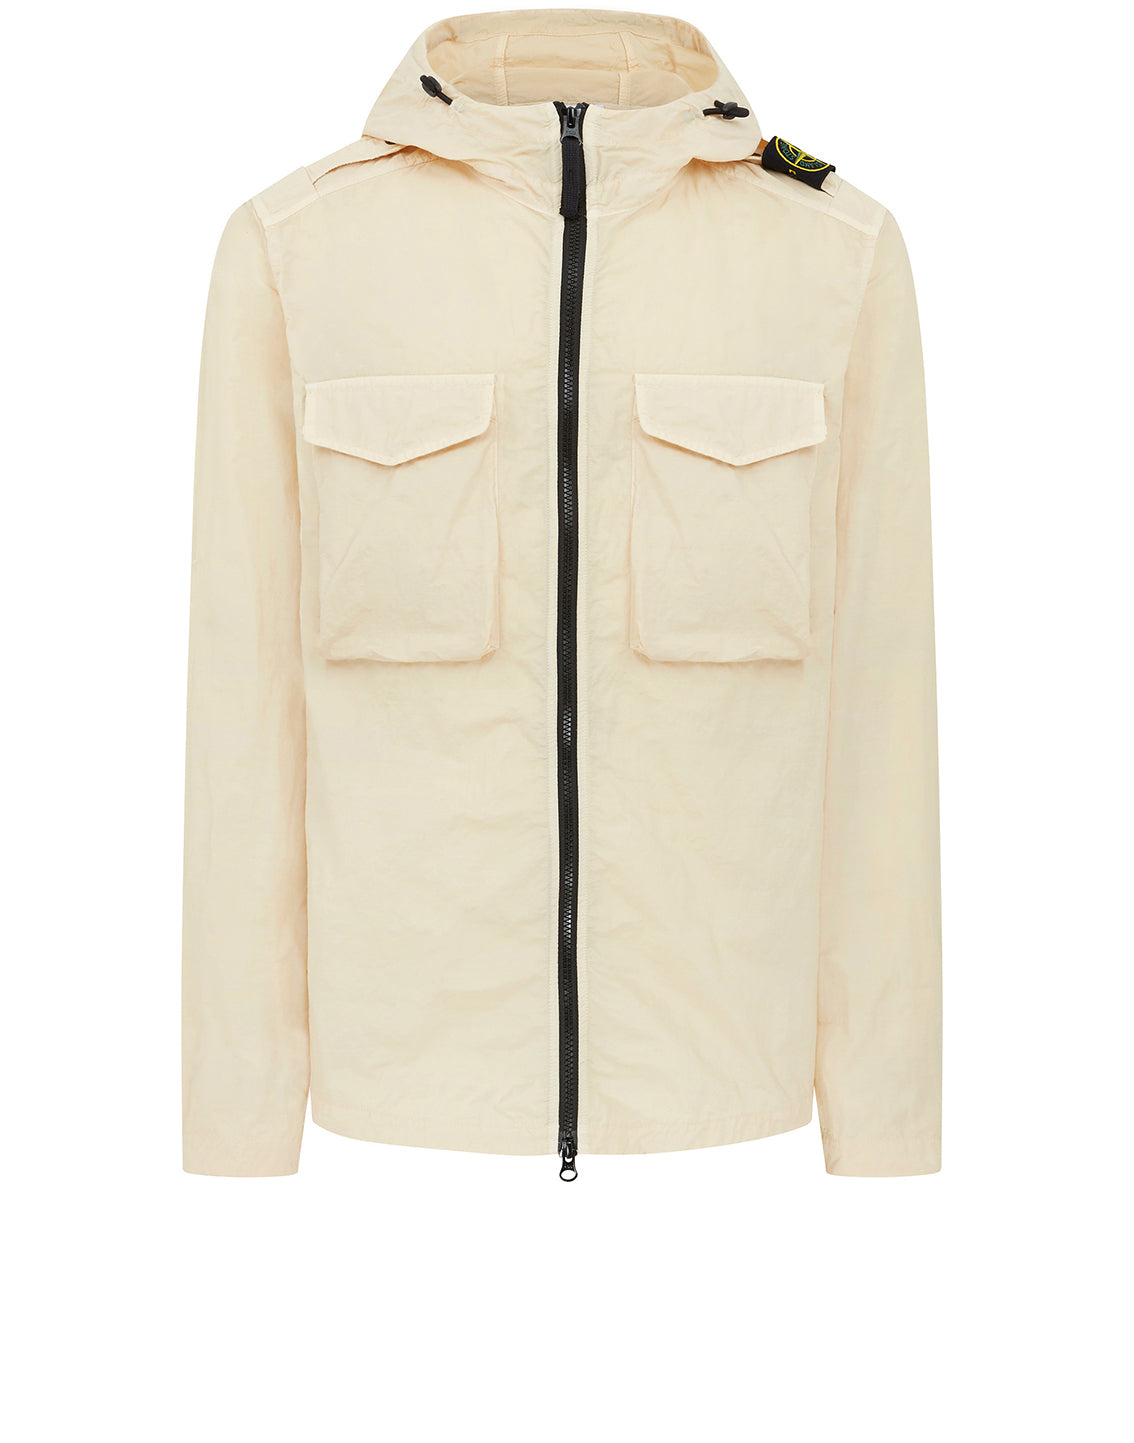 11602 NASLAN LIGHT Overshirt in Ivory